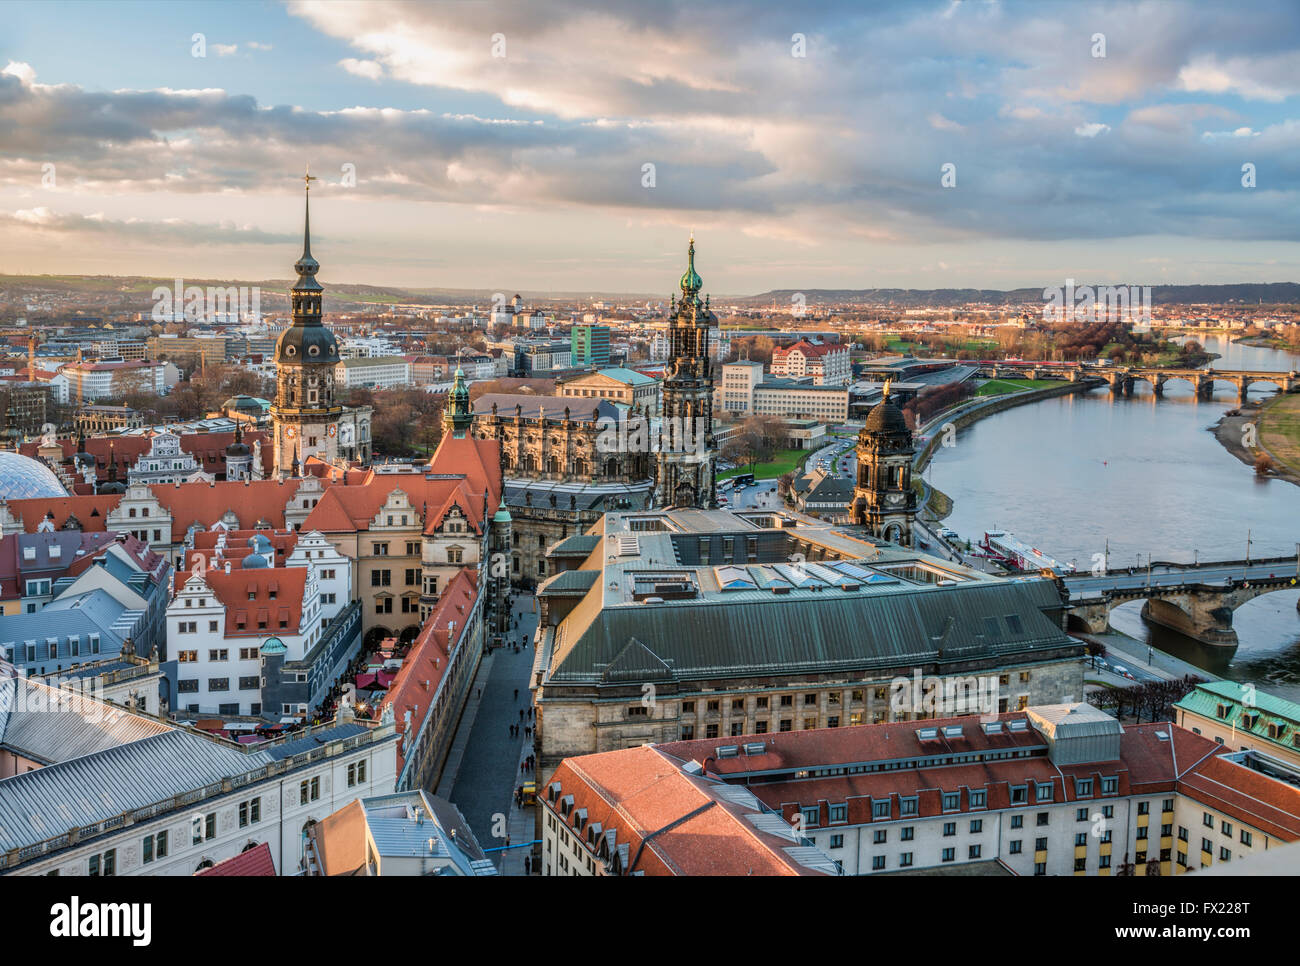 View over the old town and Dresden skyline at dawn, Saxony, Germany Stock Photo